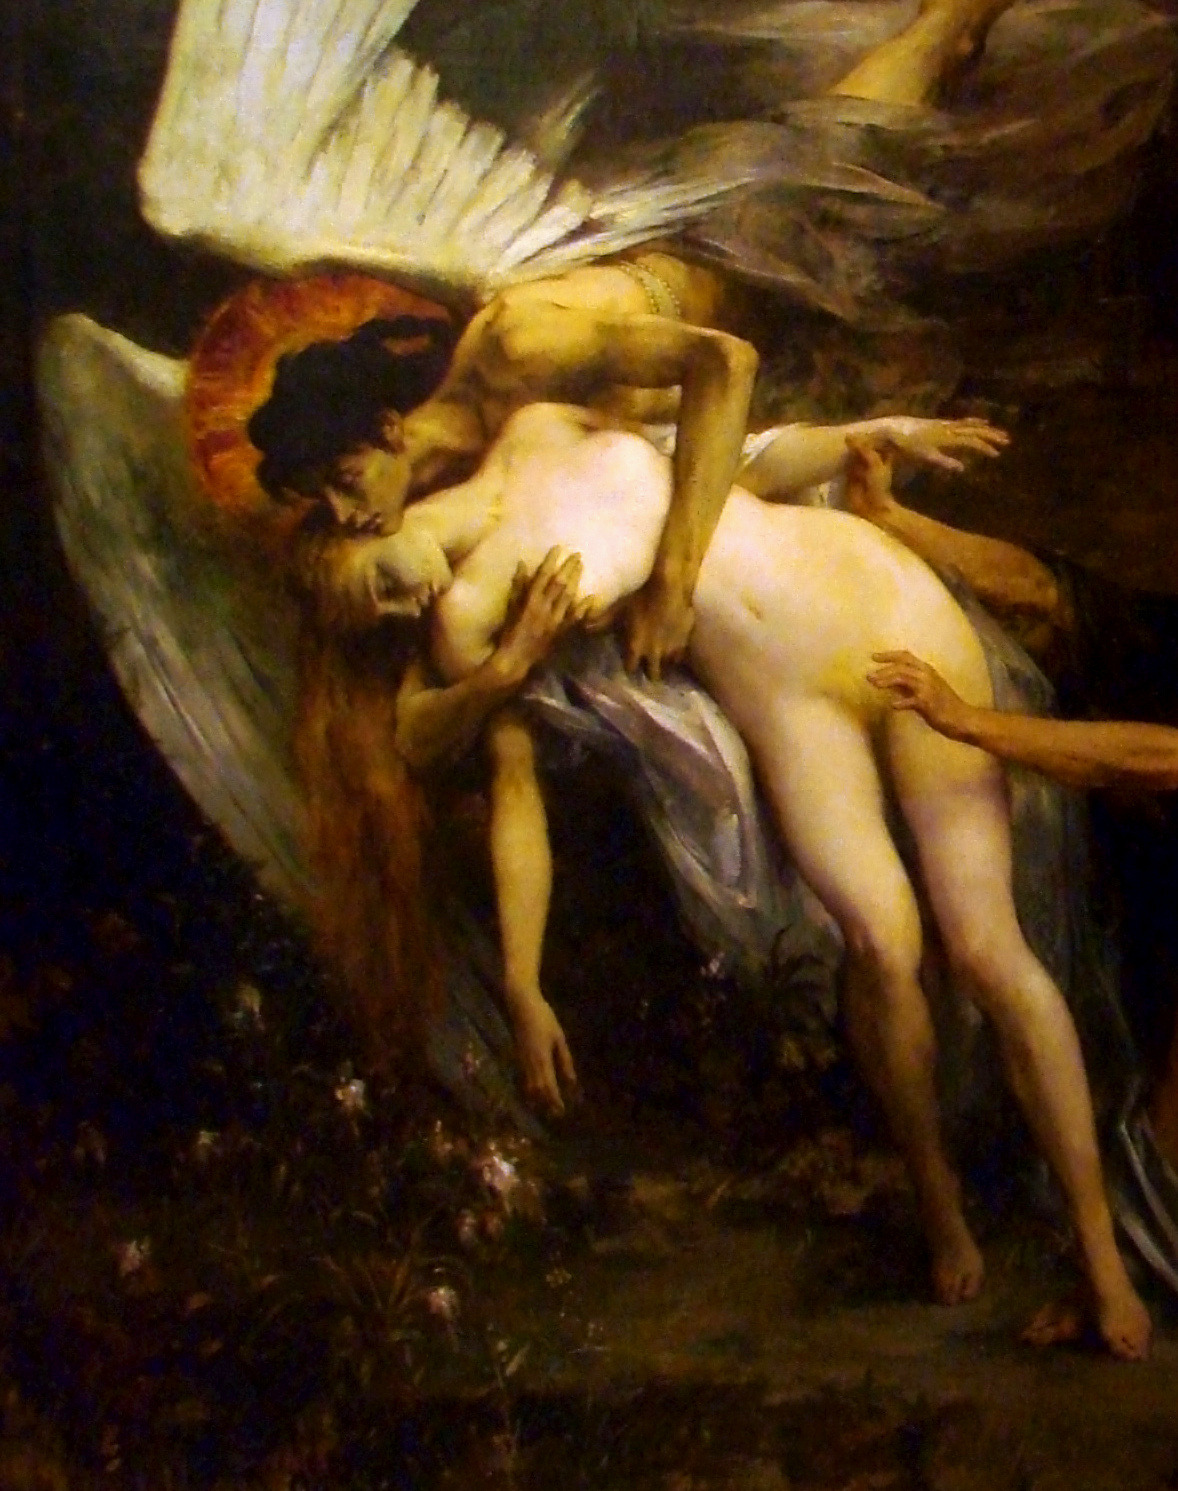 Henri Lévy, Death and the Maiden, detail, 1900